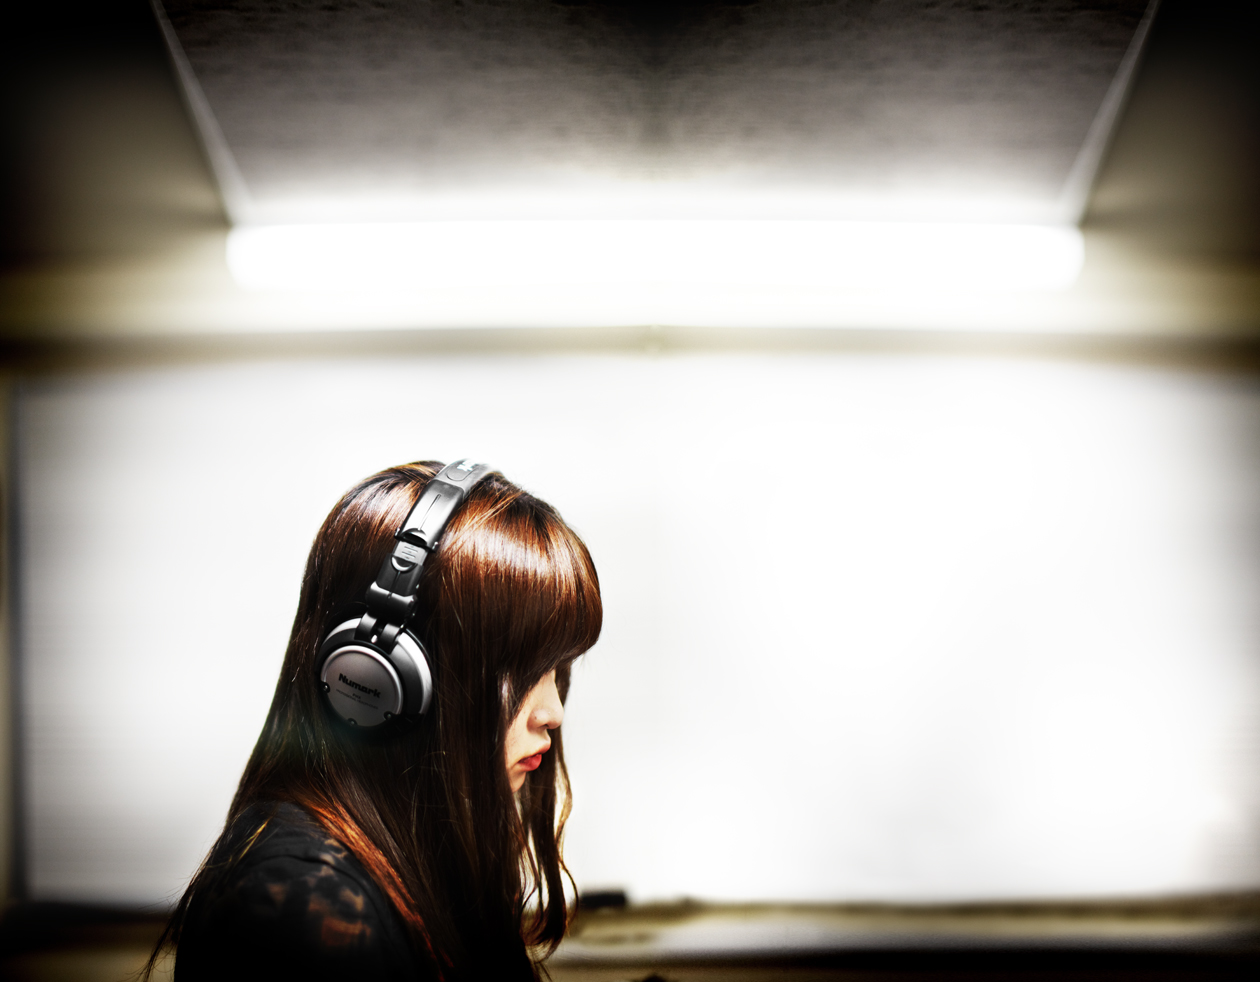 Christian_Kozowyk_girl_headphones